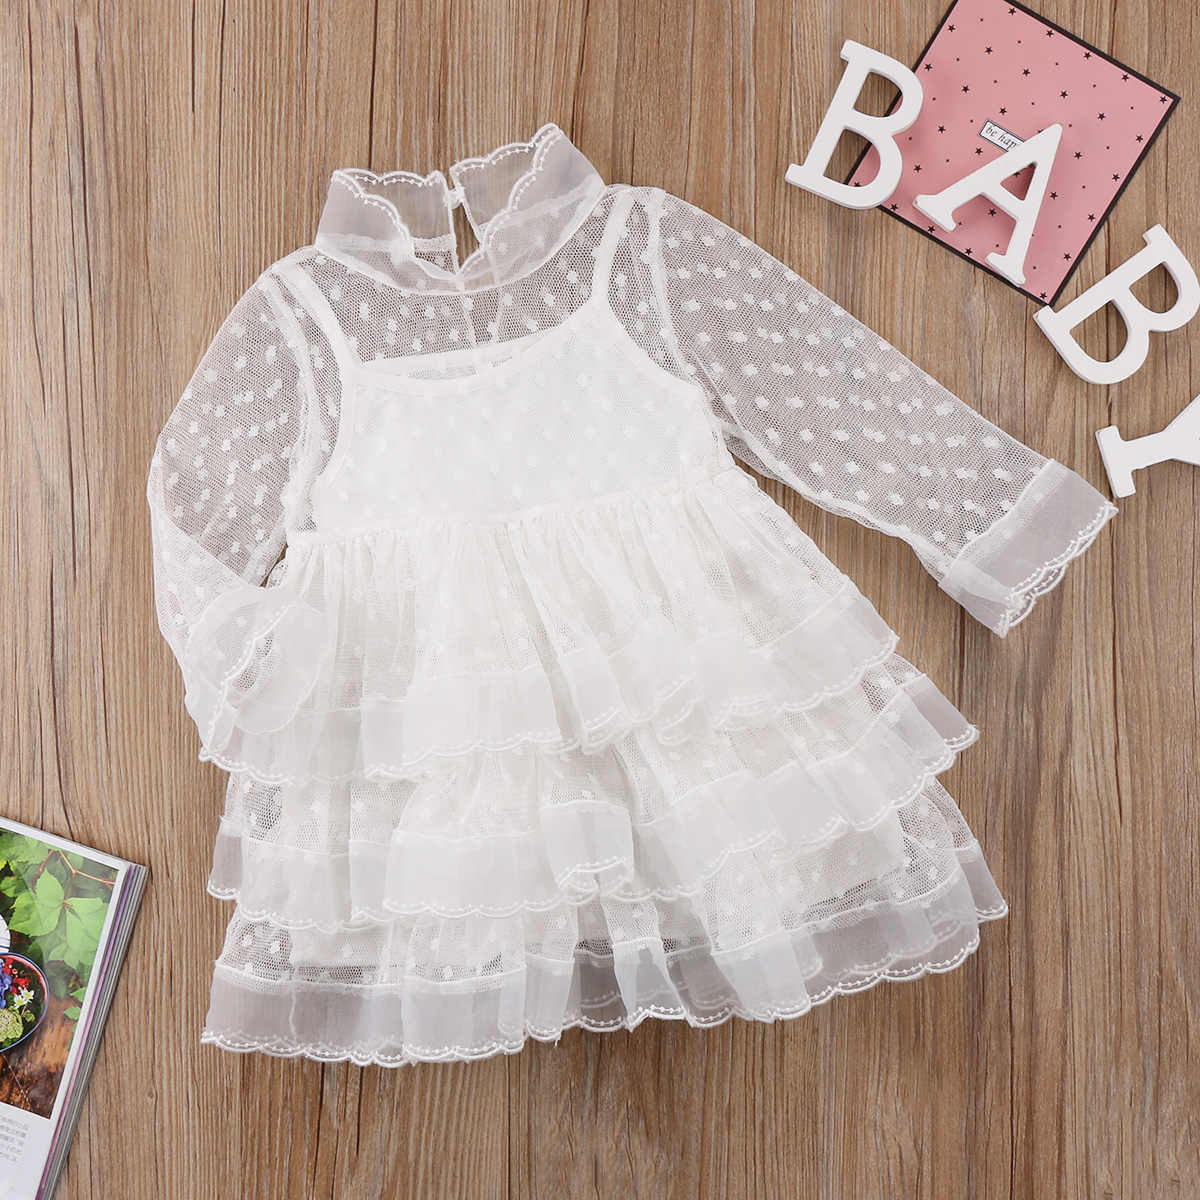 New Fashion Stock Dress Kids Baby Girls Party Princess Dot Tulle Lace Tutu  Dress Formal Clothes 3883c556c819